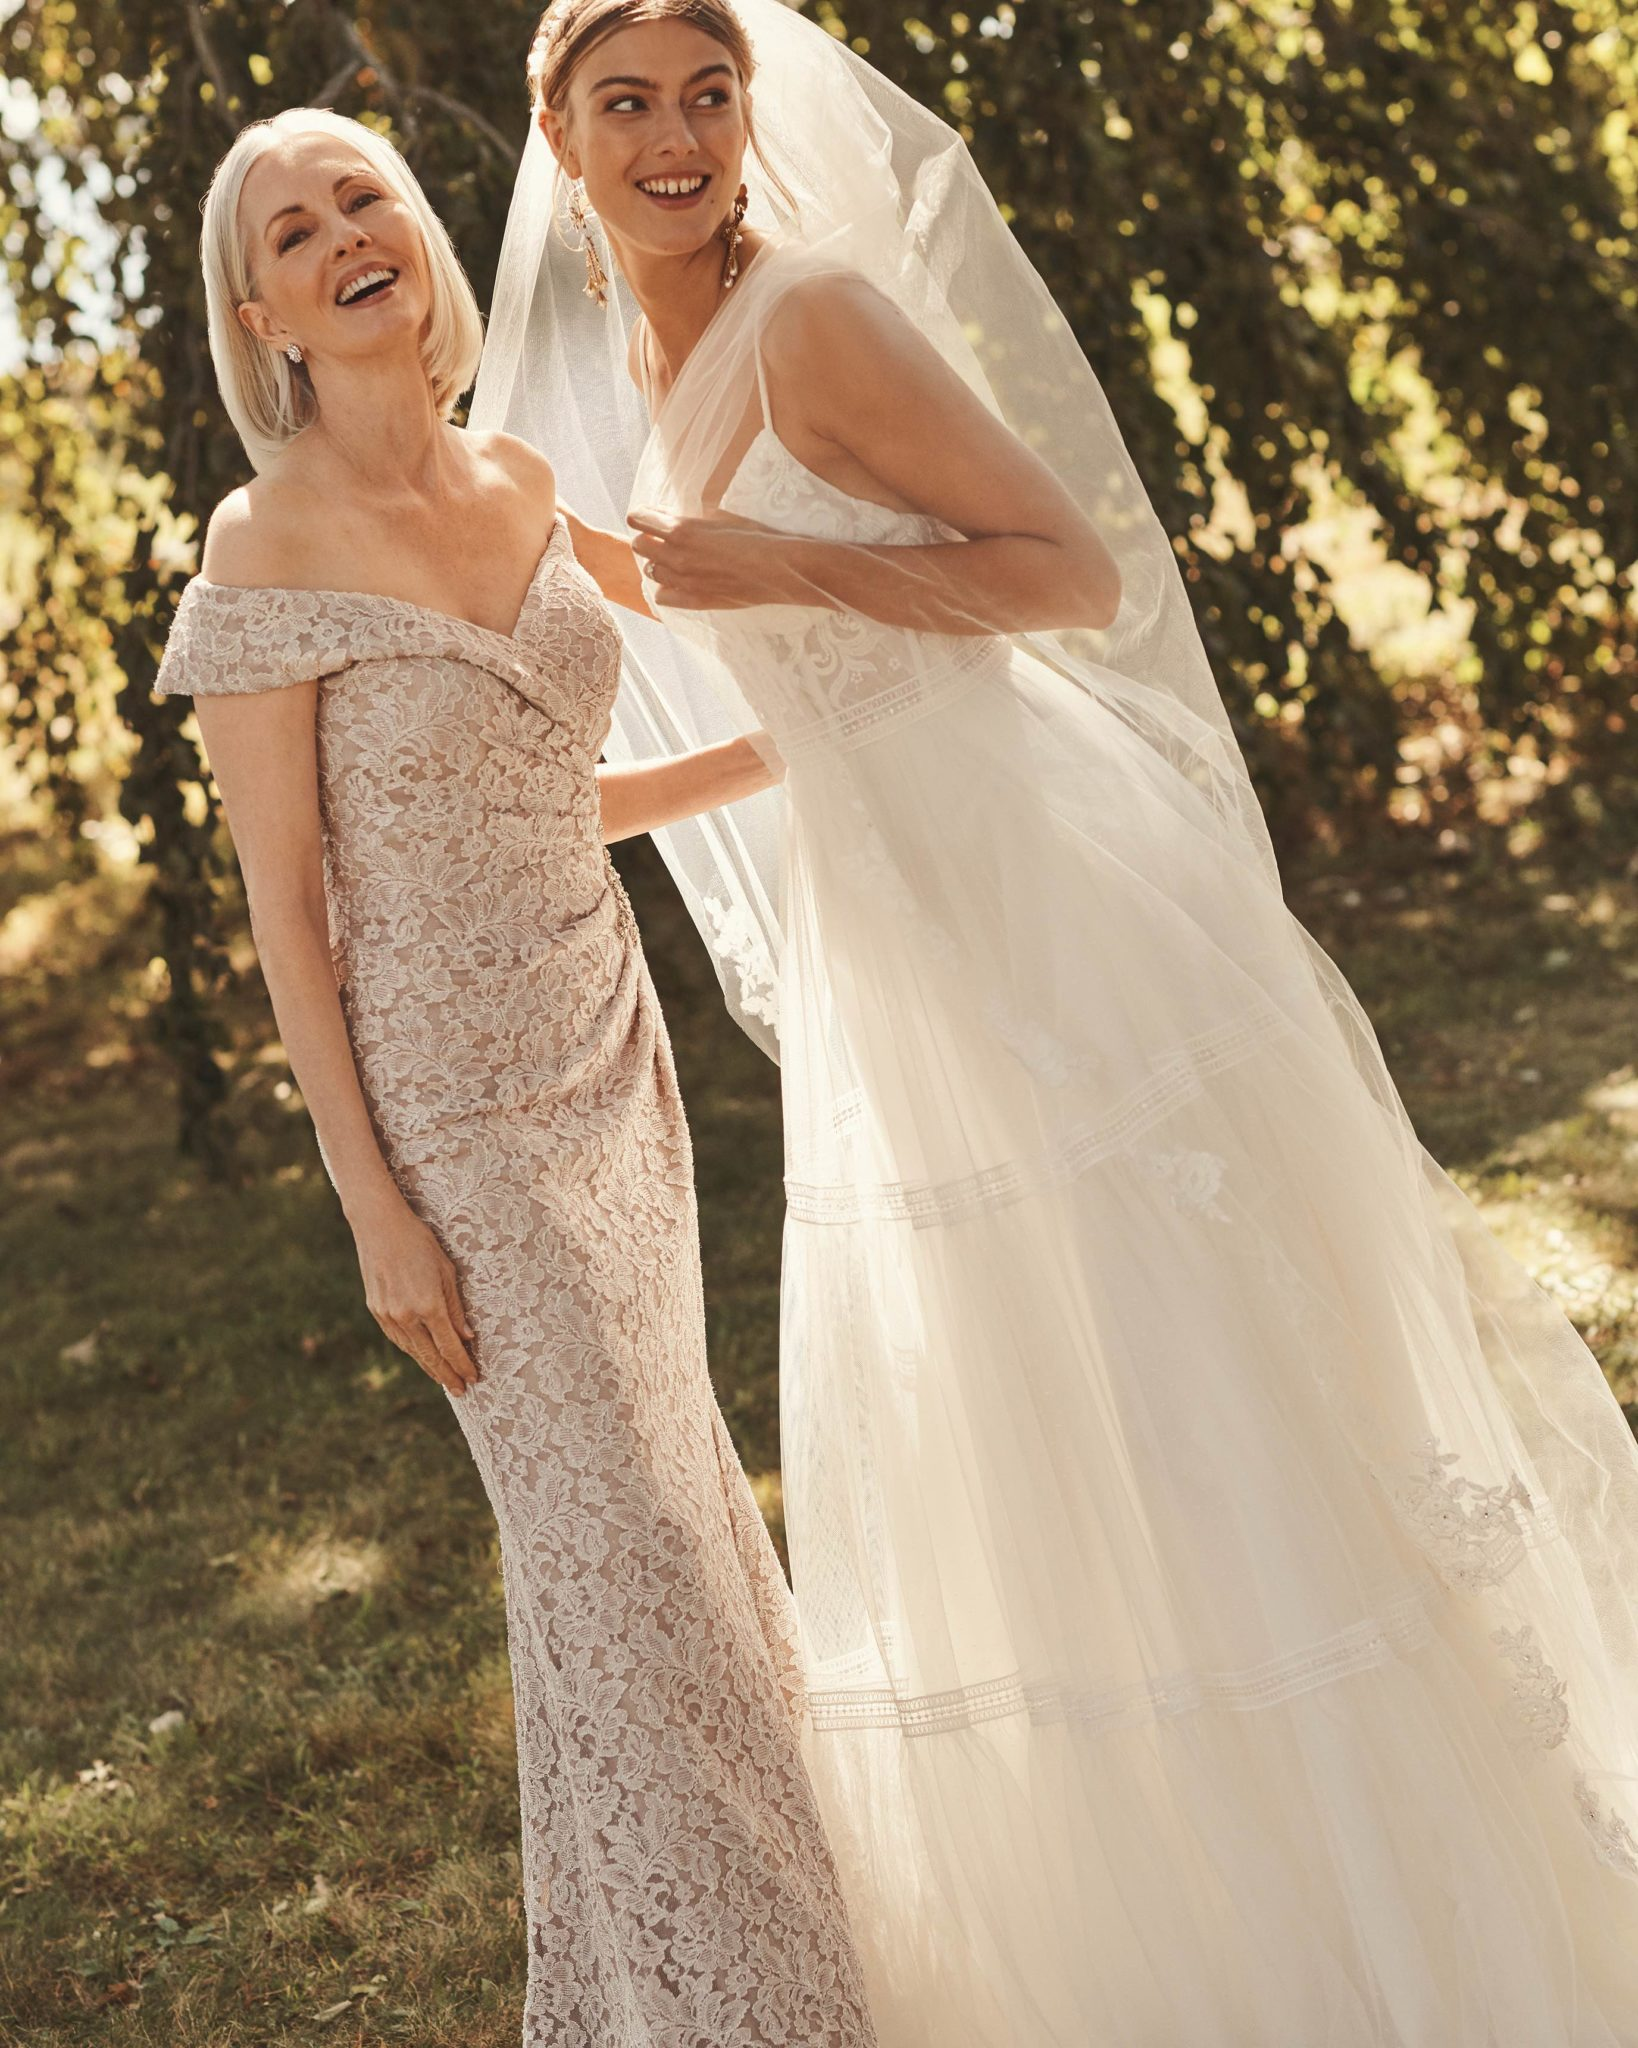 Mother Of The Bride Dress Etiquette David S Bridal Blog,Dress To Wear To A Wedding In November